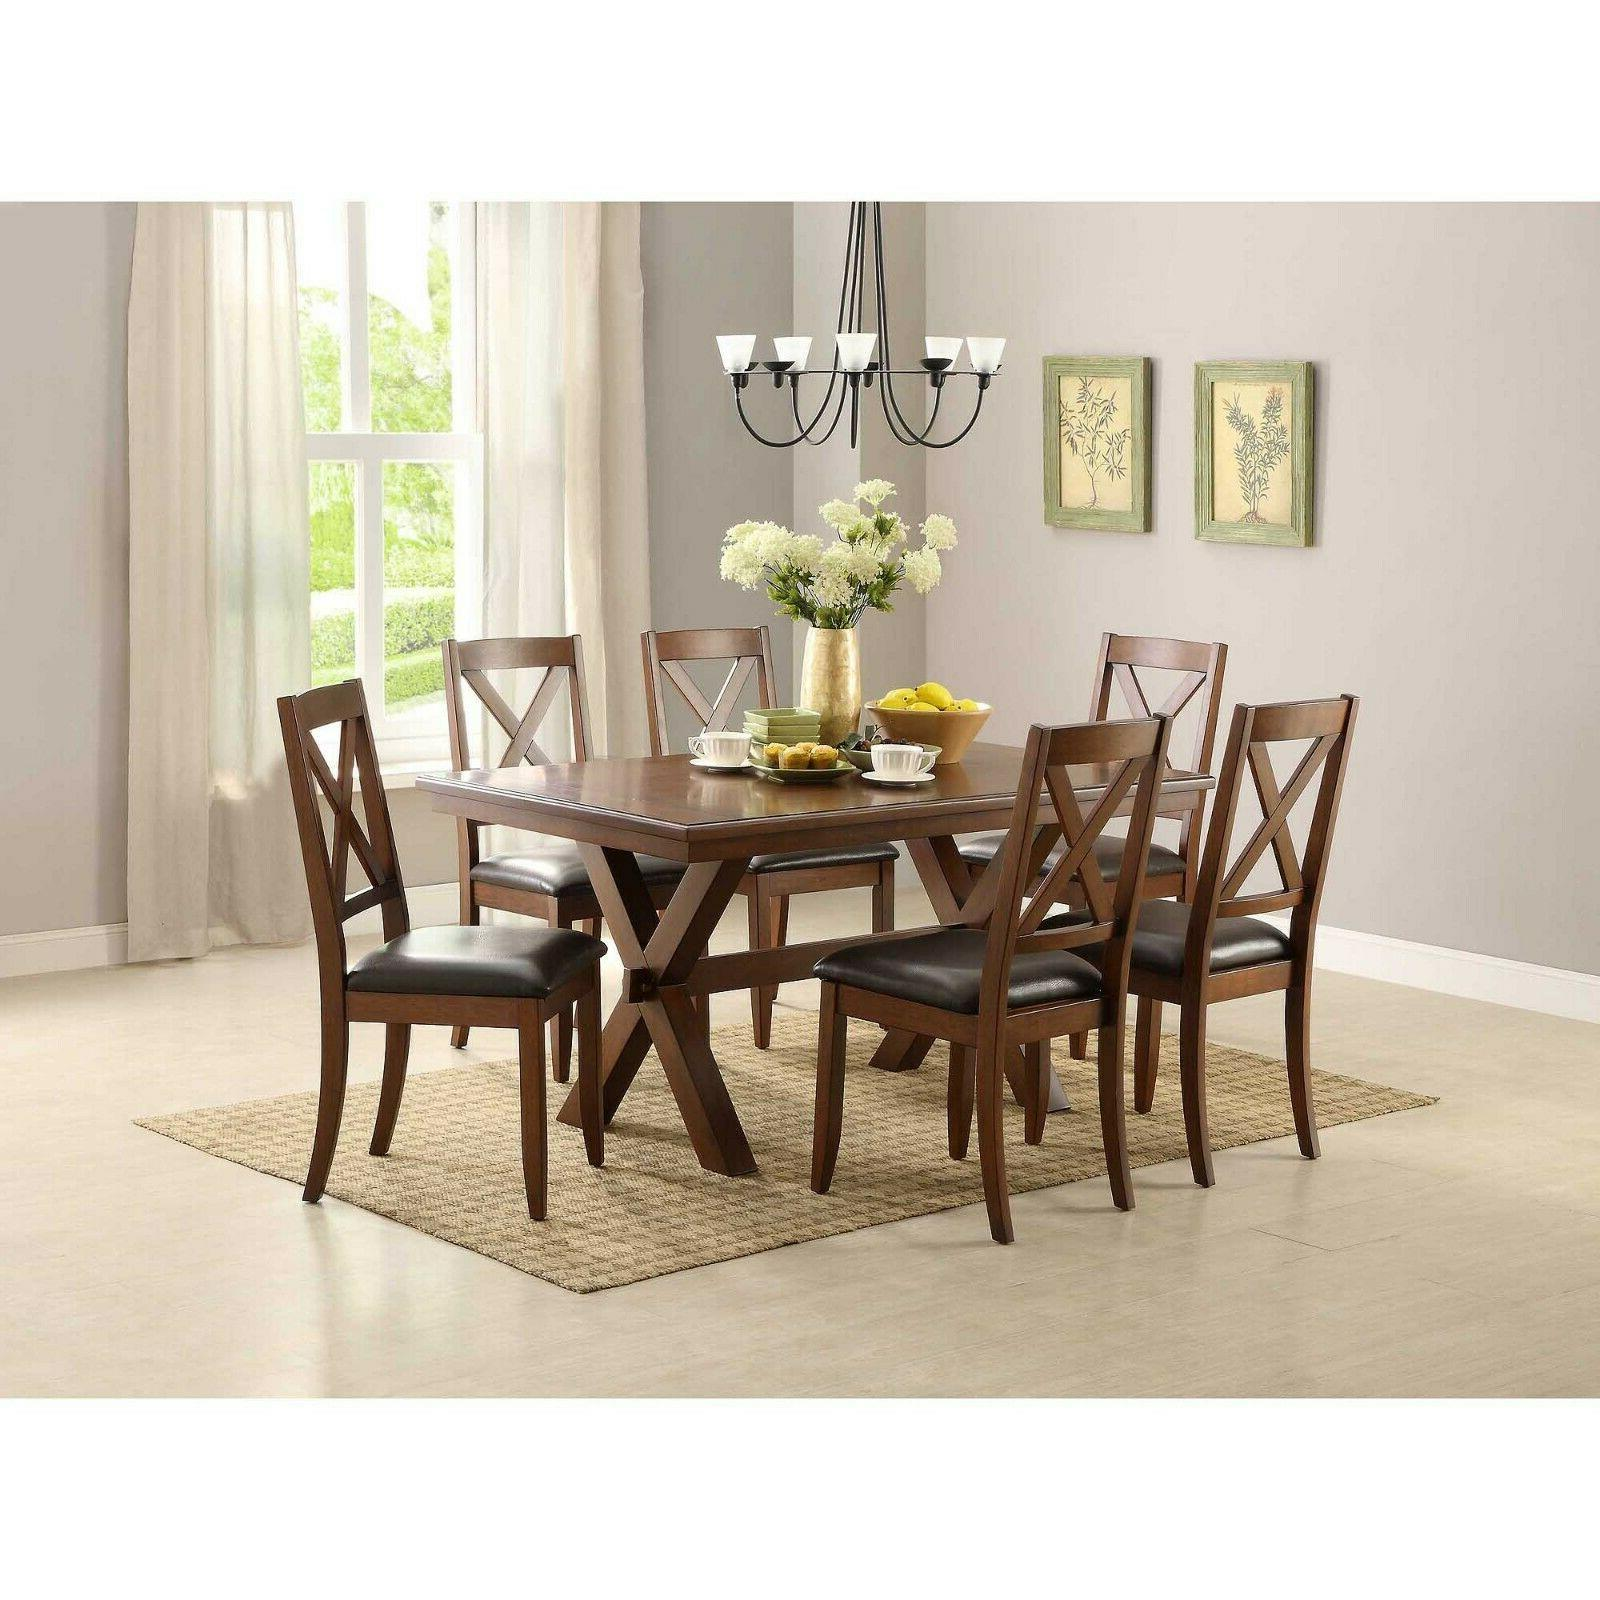 dining room table set farmhouse wooden kitchen